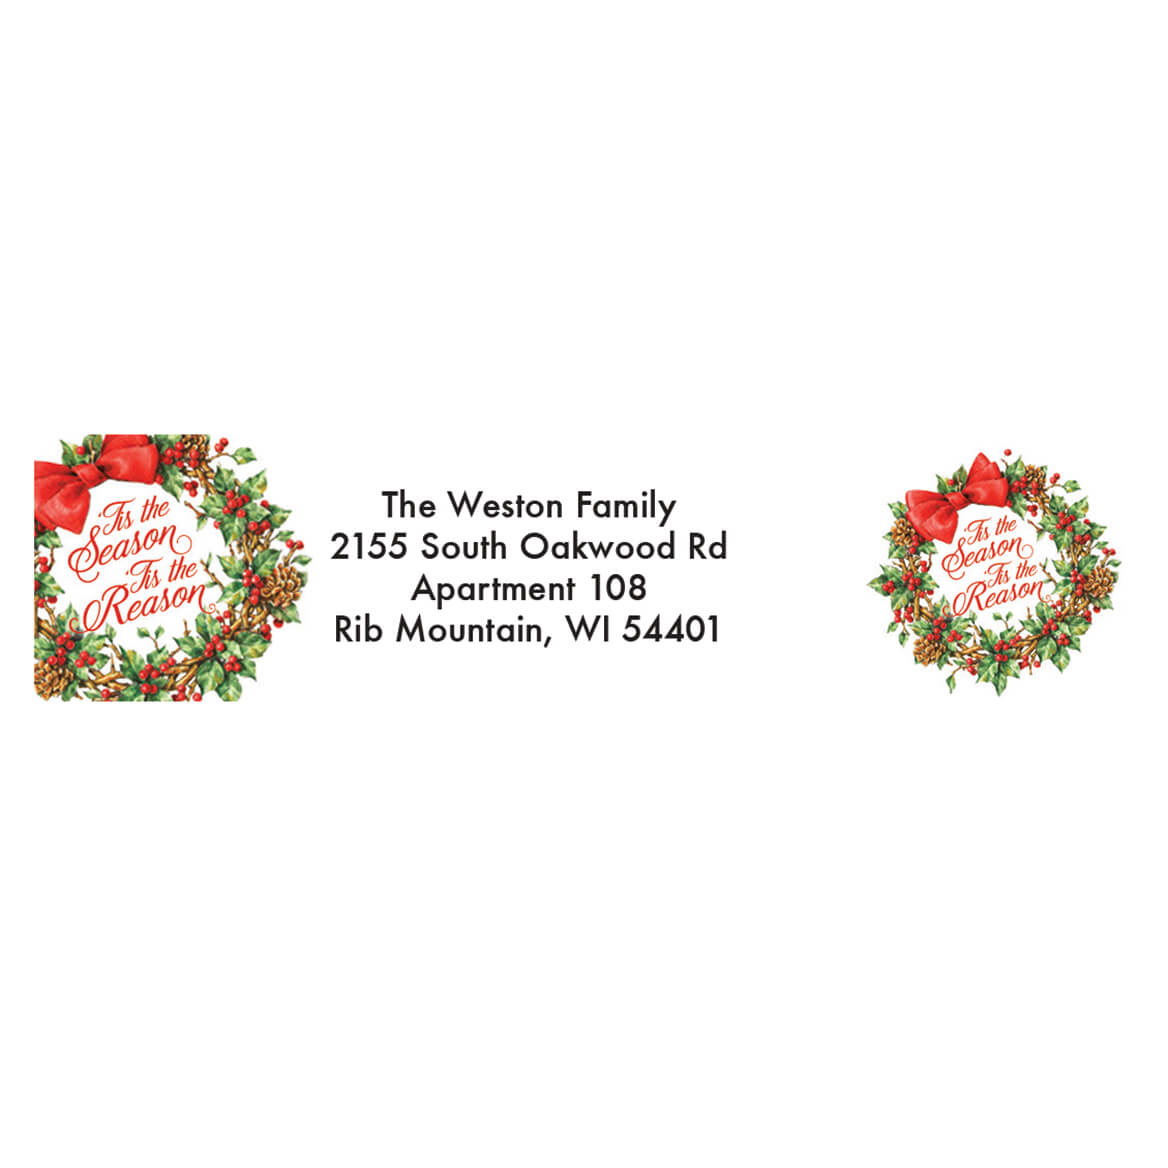 Personalized Tis the Reason Address Labels & Seals 20-364765